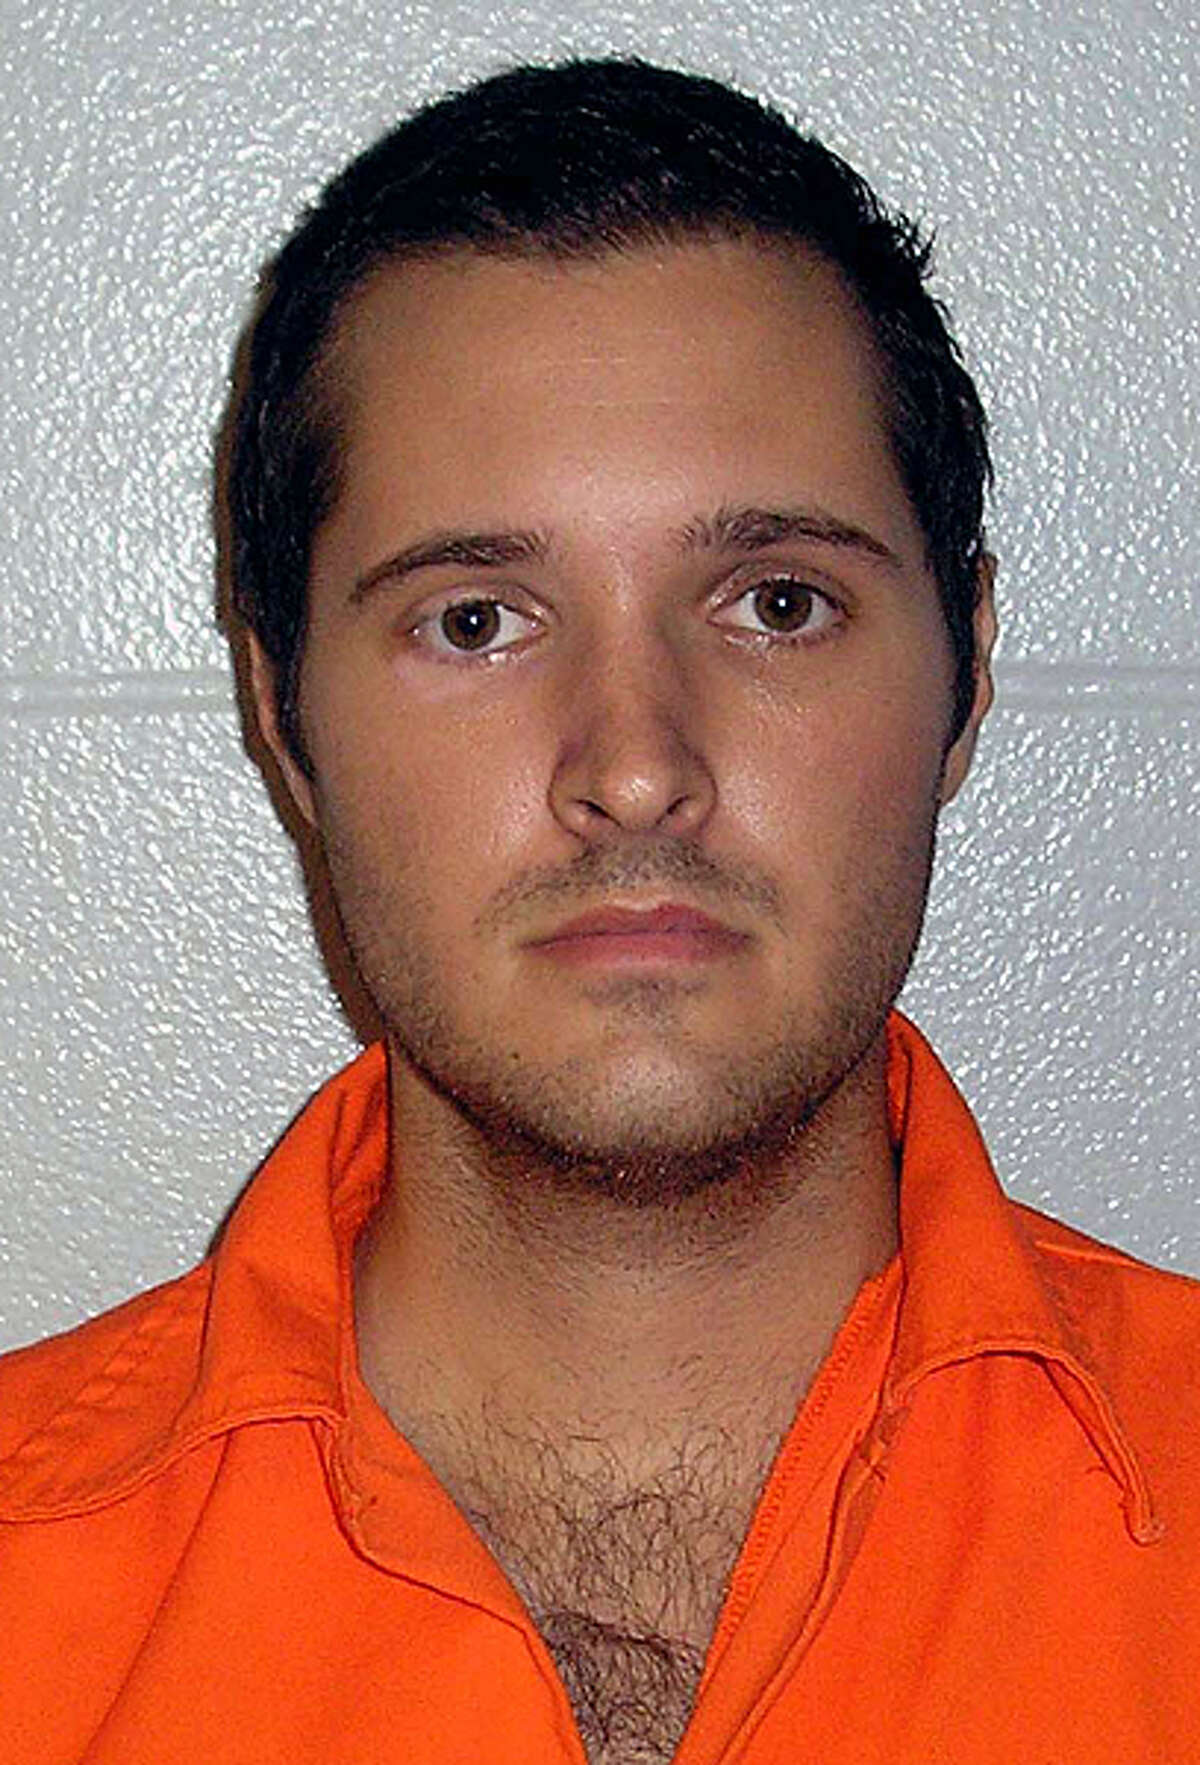 Booking Photo of Bart Whitaker Sugar Land PD. Death Penalty given on March 8, 2007 in Houston, Texas. Courtesy Photo from Sugarland Police dept. via Houston Chronicle